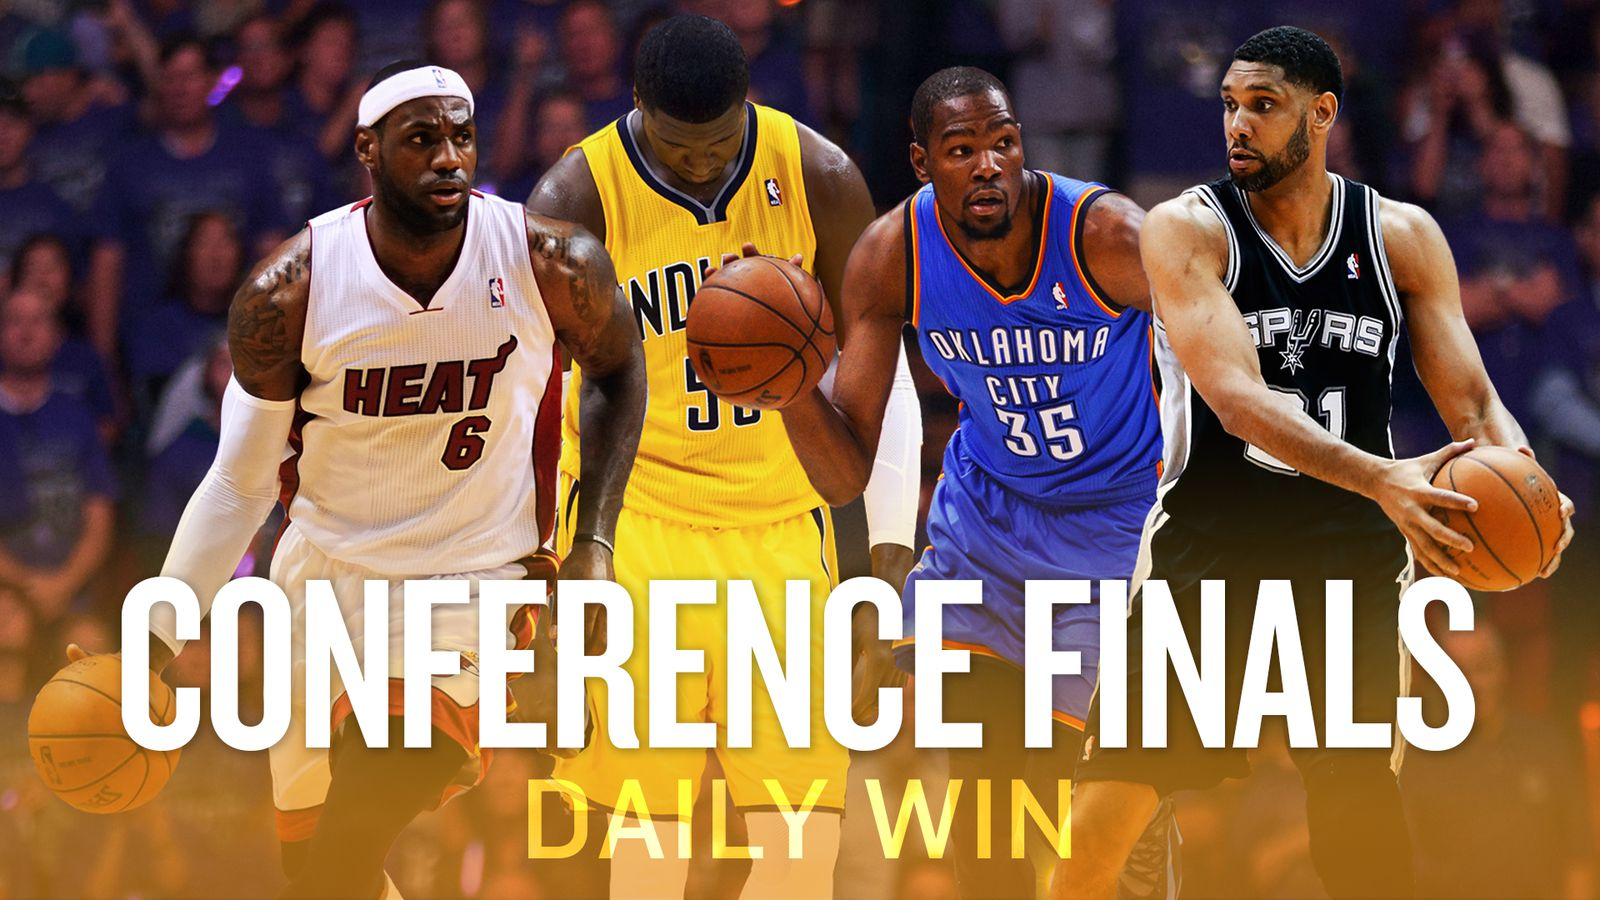 NBA Conference Finals: the 3 teams that can win it all, plus the Pacers - SBNation.com